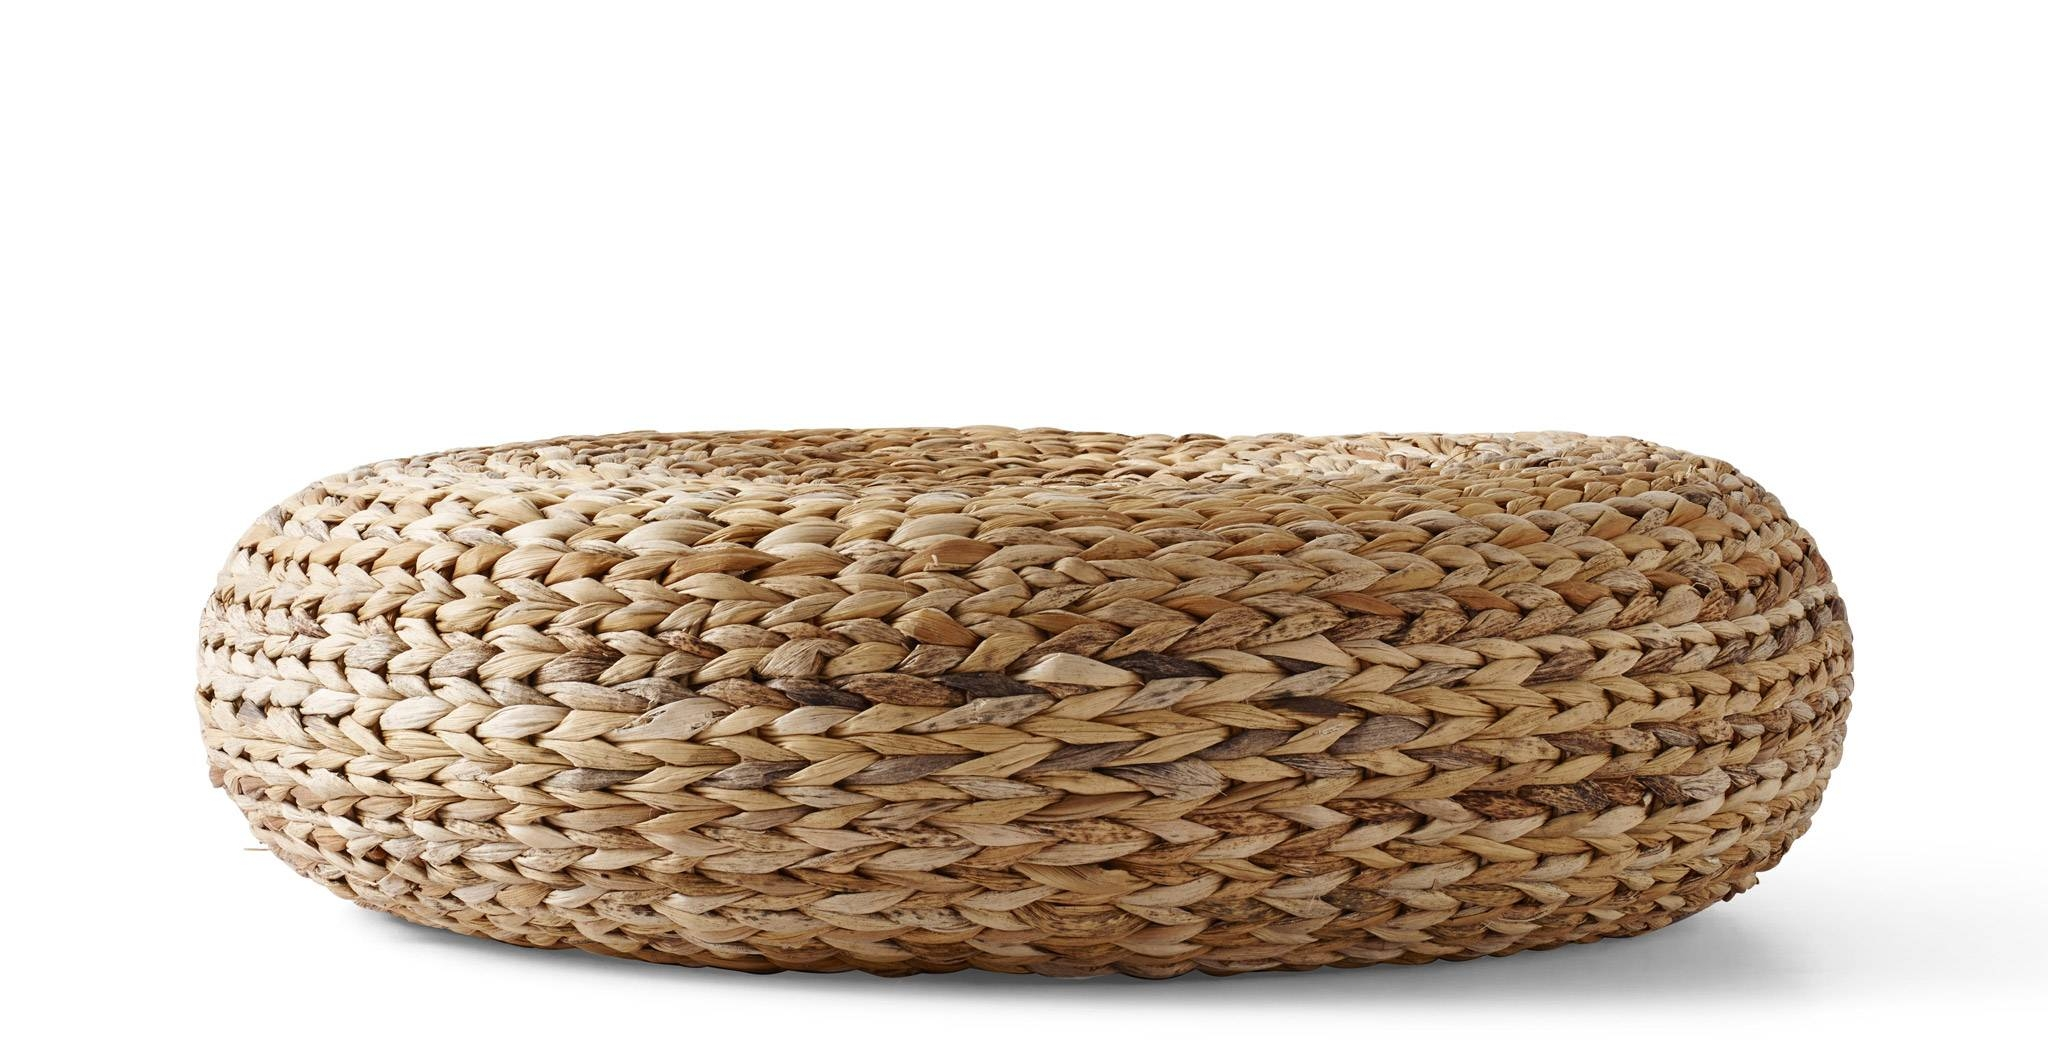 Rattan Footstools & Pouffes | Ikea inside Footstools and Pouffes (Image 29 of 30)